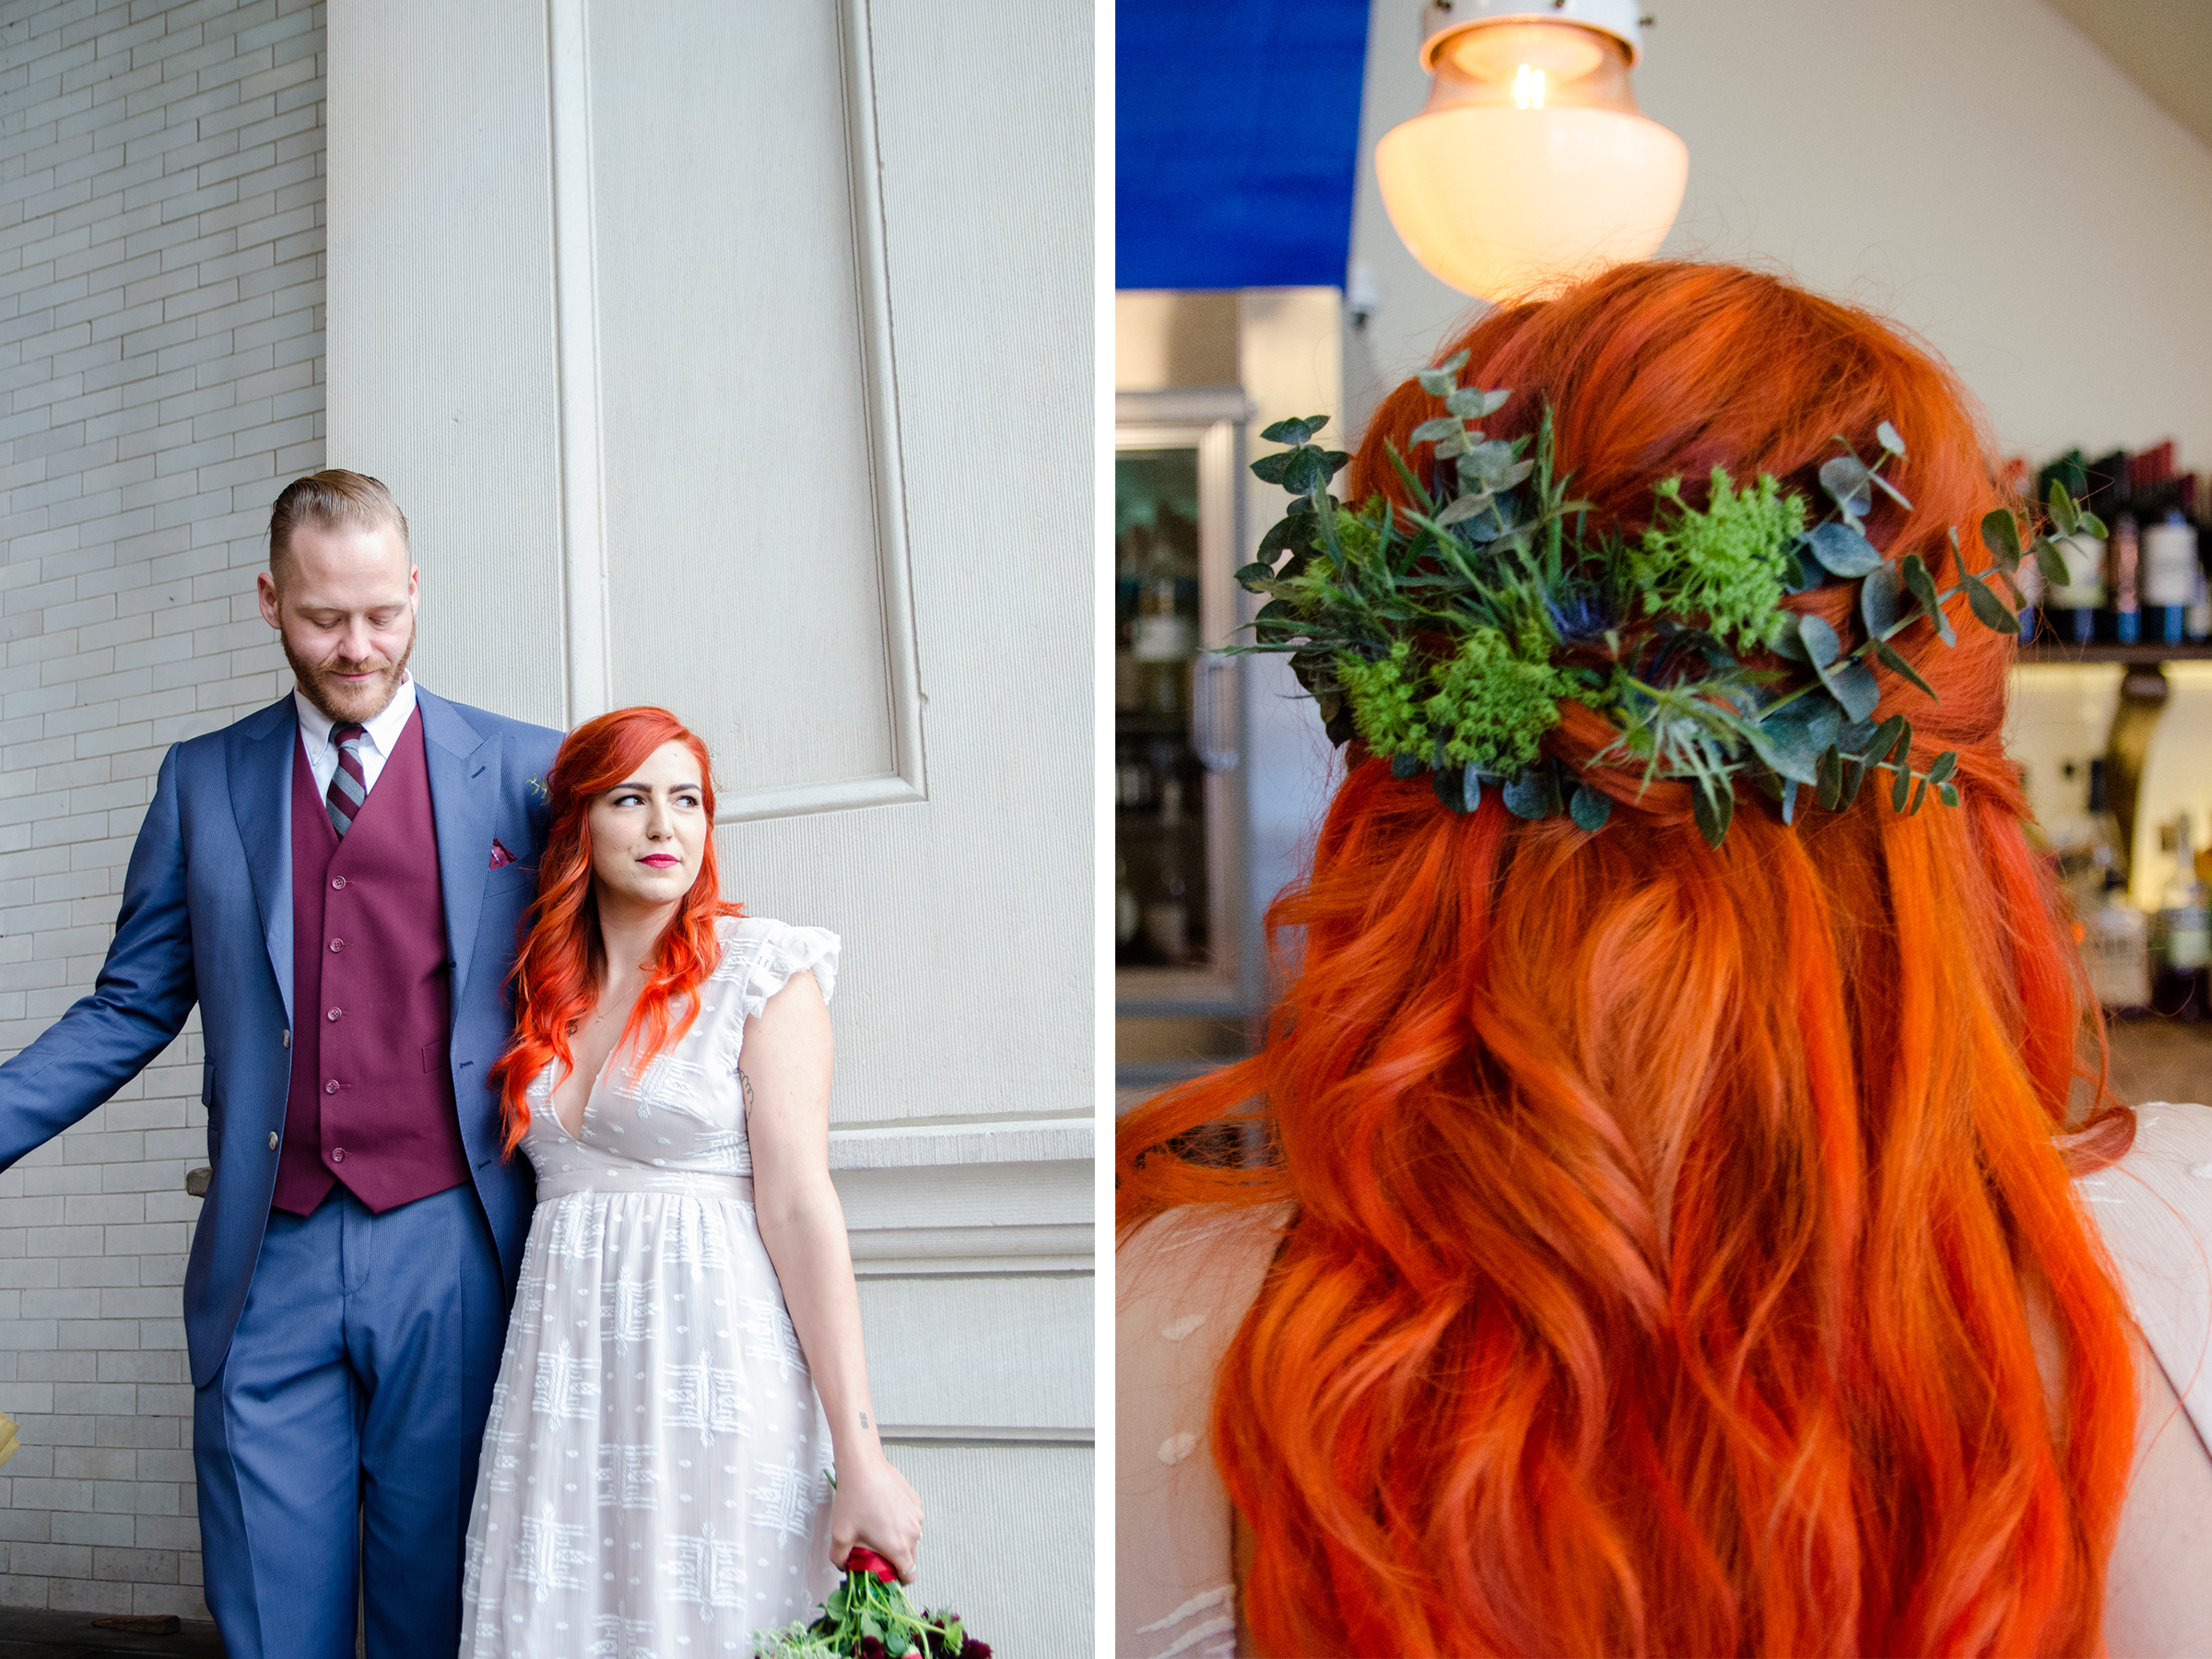 Hair stylist Kristina Maccaro pulled Kate's firey red hair back into a soft half up half down style and used extra leaves from Kate's DIY bridal bouquet to add an earthy and nature inspired pop of fun.   Hair by:  Kristina Maccaro